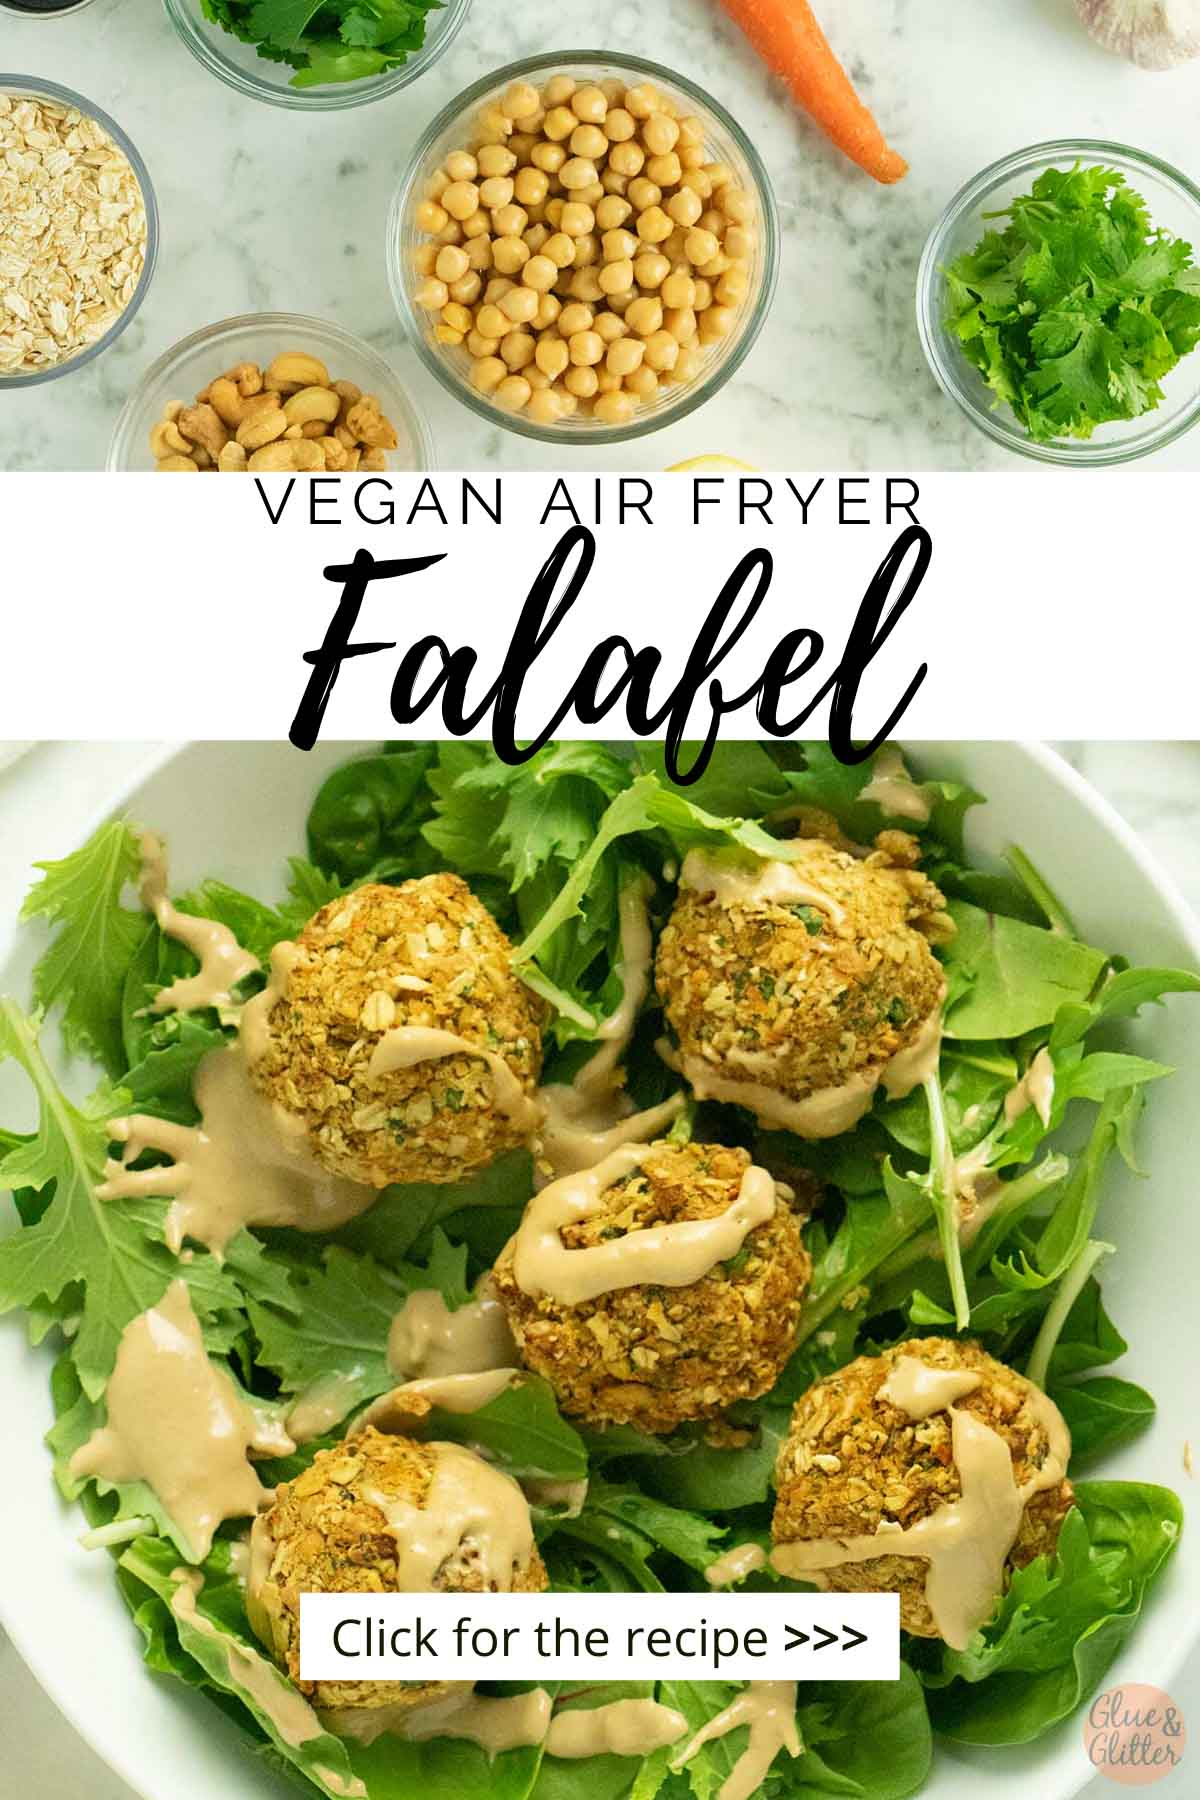 green salad topped with falafel, text overlay